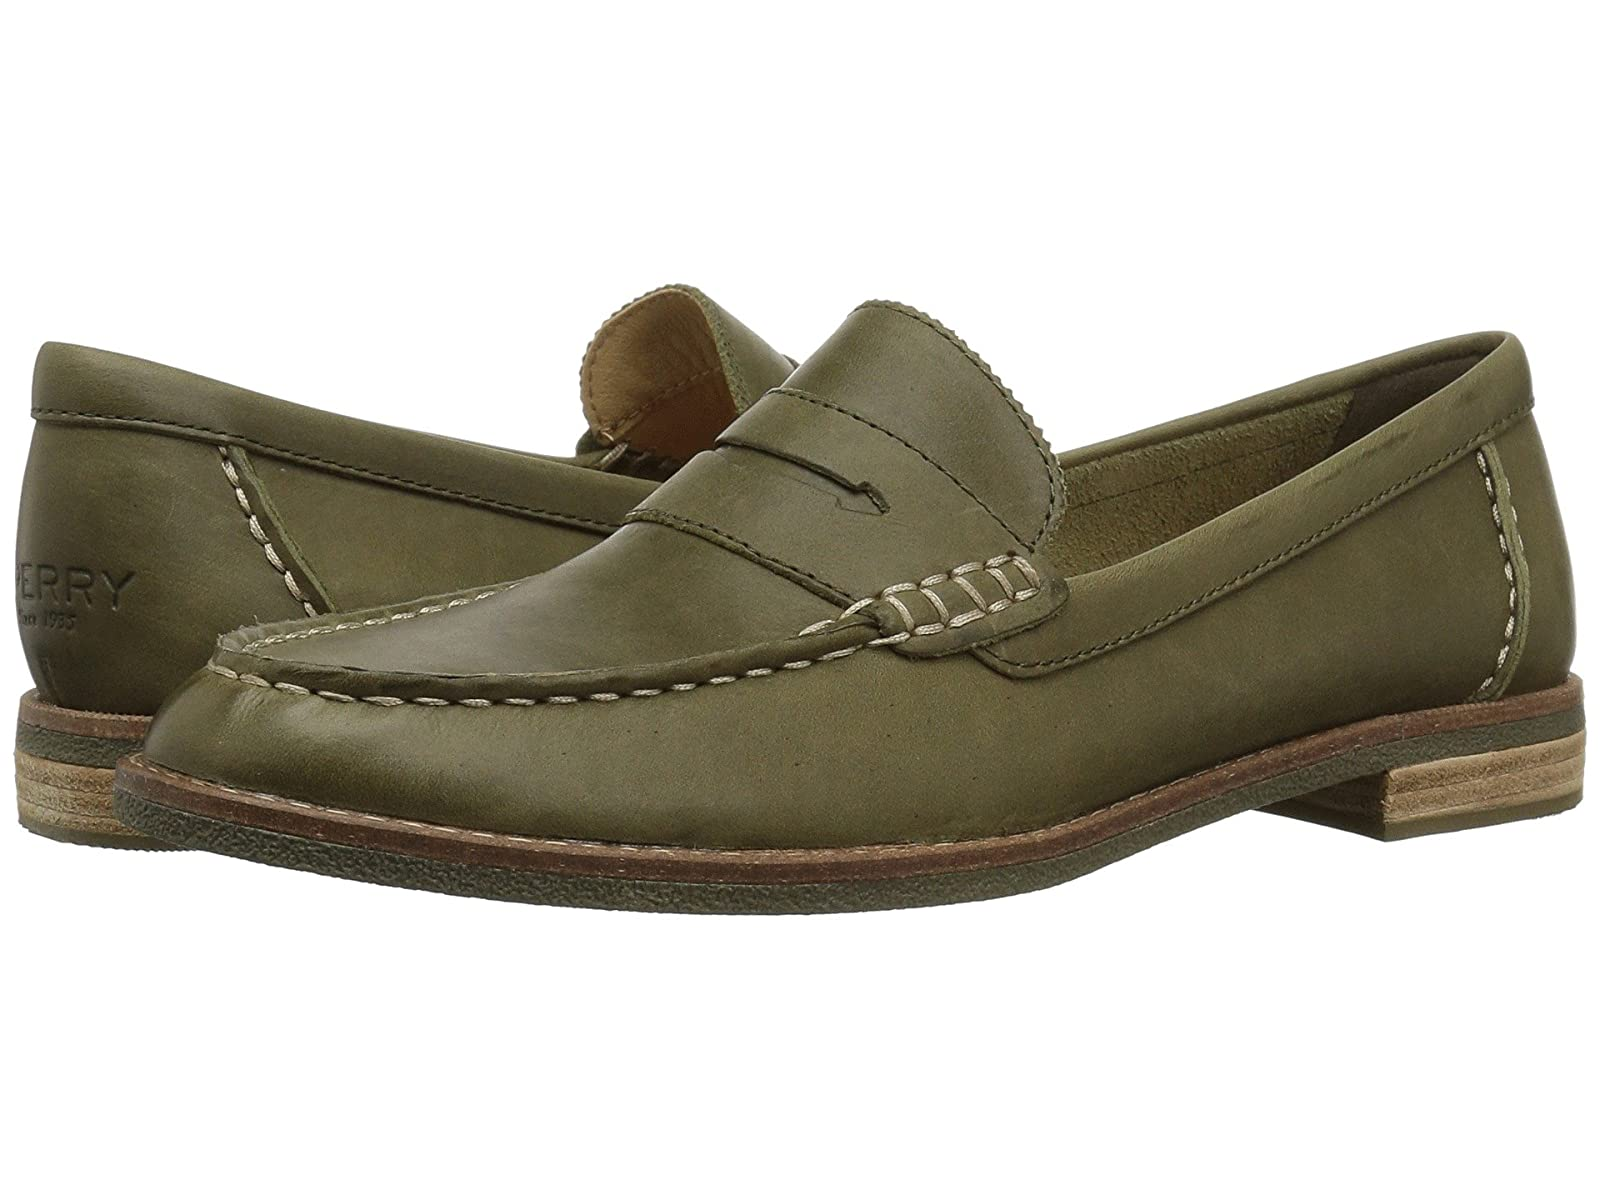 Sperry Seaport PennyAtmospheric grades have affordable shoes